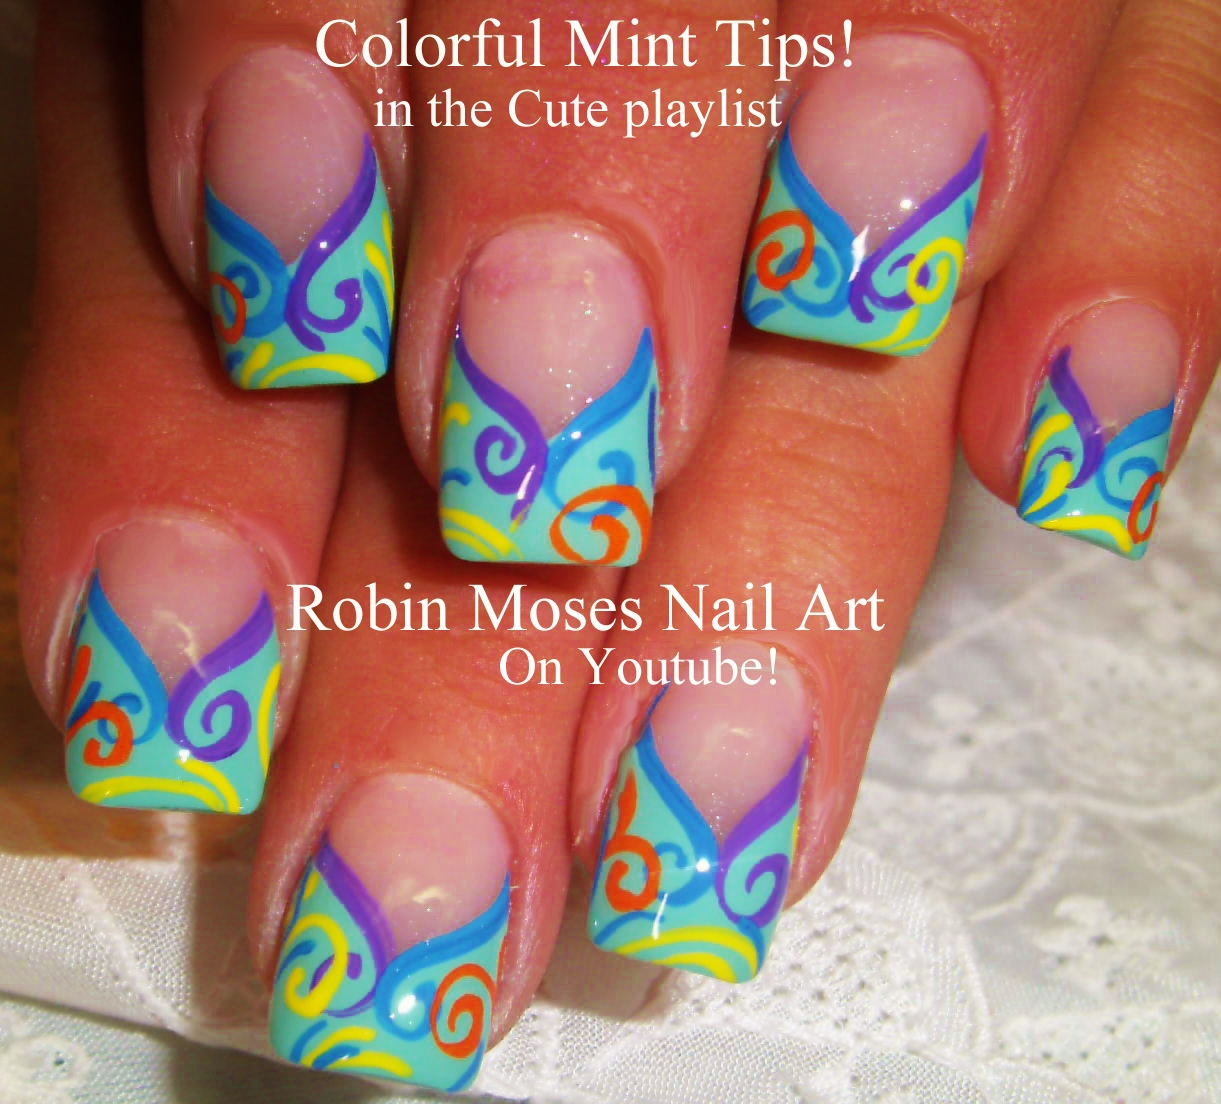 Robin Moses Nail Art February 2015: Robin Moses Nail Art: June 2015